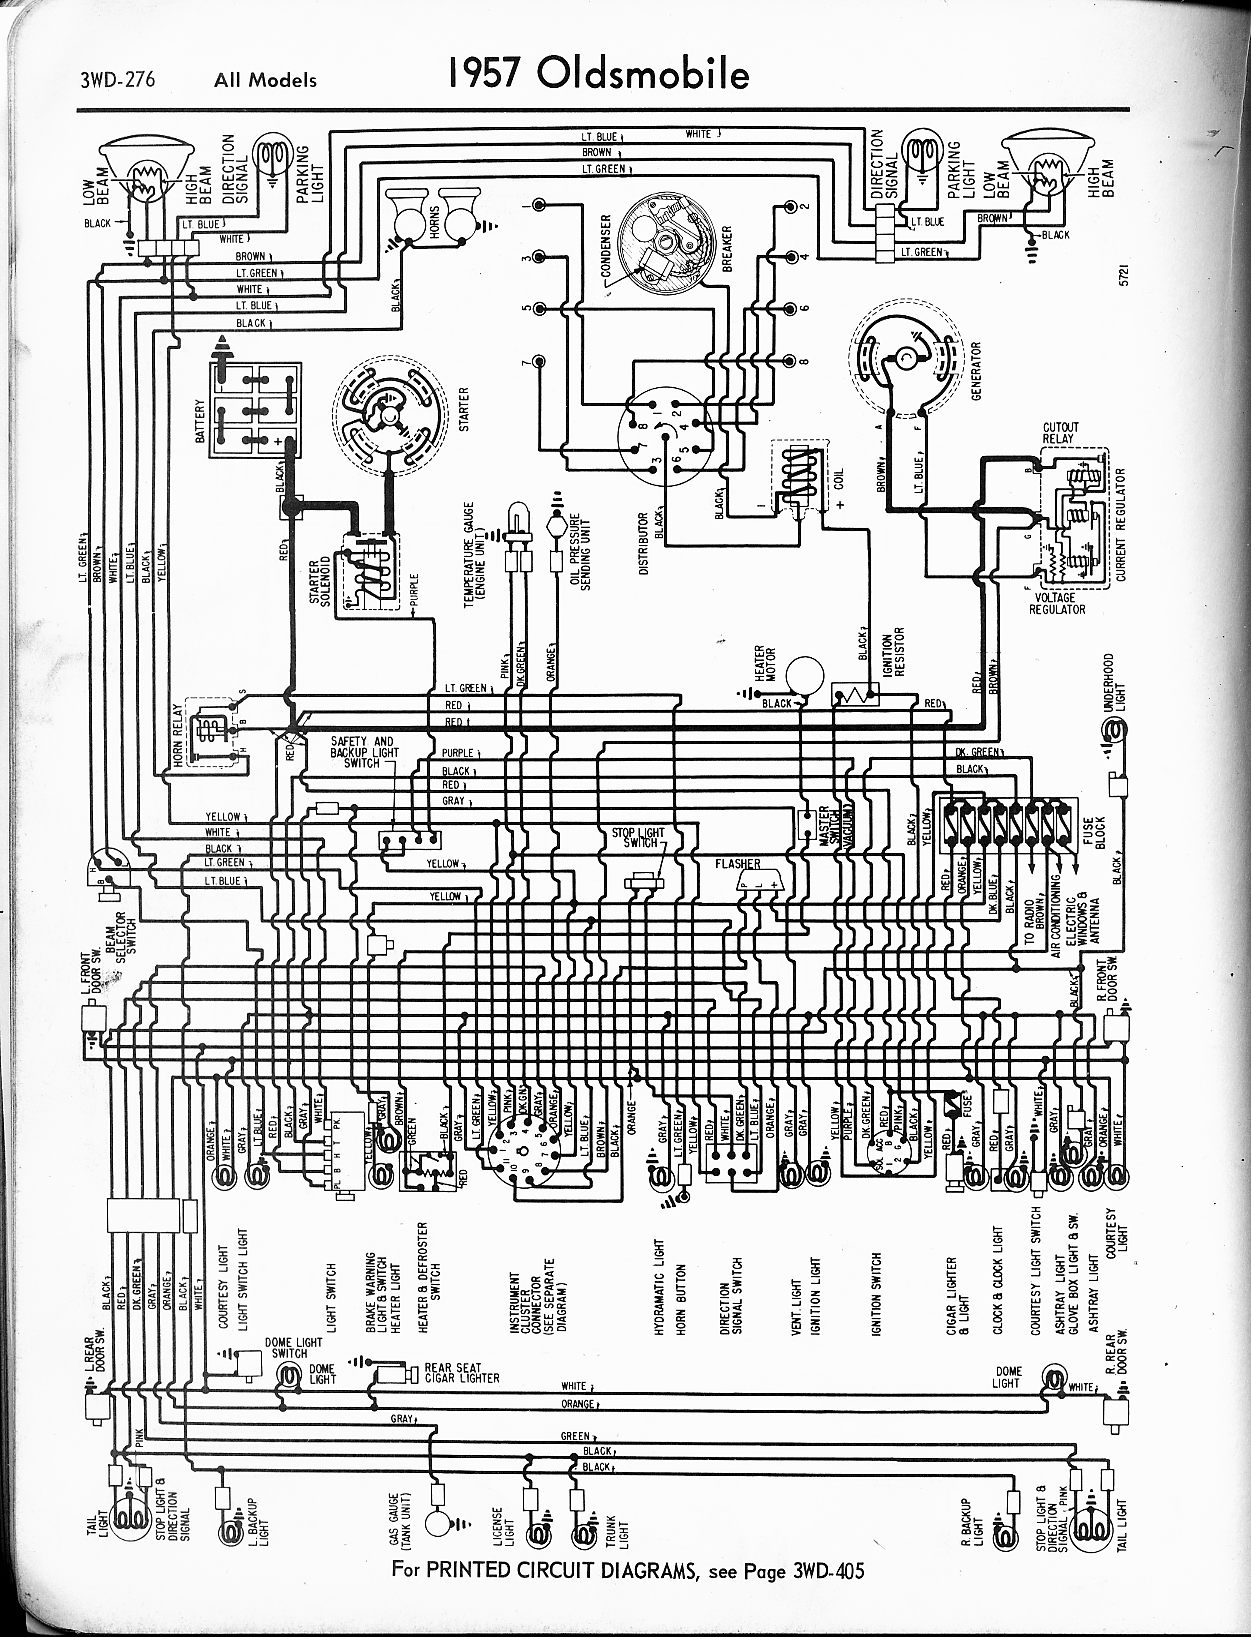 Power Locks Wiring Diagram 1984 Chevy Truck Radio 84 Silverado Likewise Door Lock On Corvette Rh Bsmdot Co Diagrams Automotive